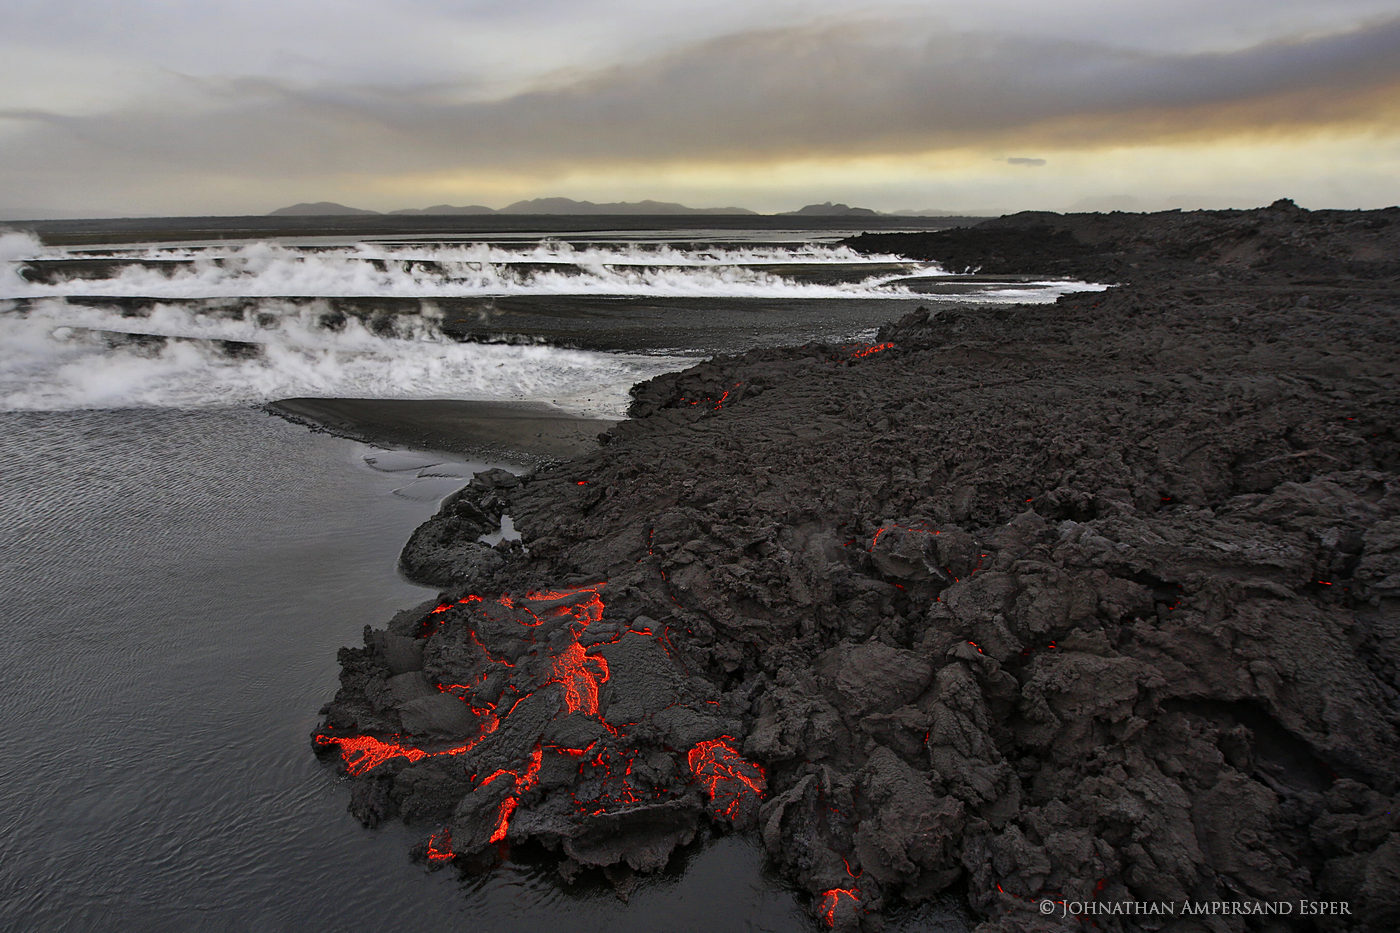 2014, Baugur, Bárðarbunga, Holuhraun, Iceland, Jokulsa a Fjollum, Jökulsá á Fjöllum, crater, erupting, eruption, flow, gas cloud, lava, river, sulfur dioxide, toxic gases, photo